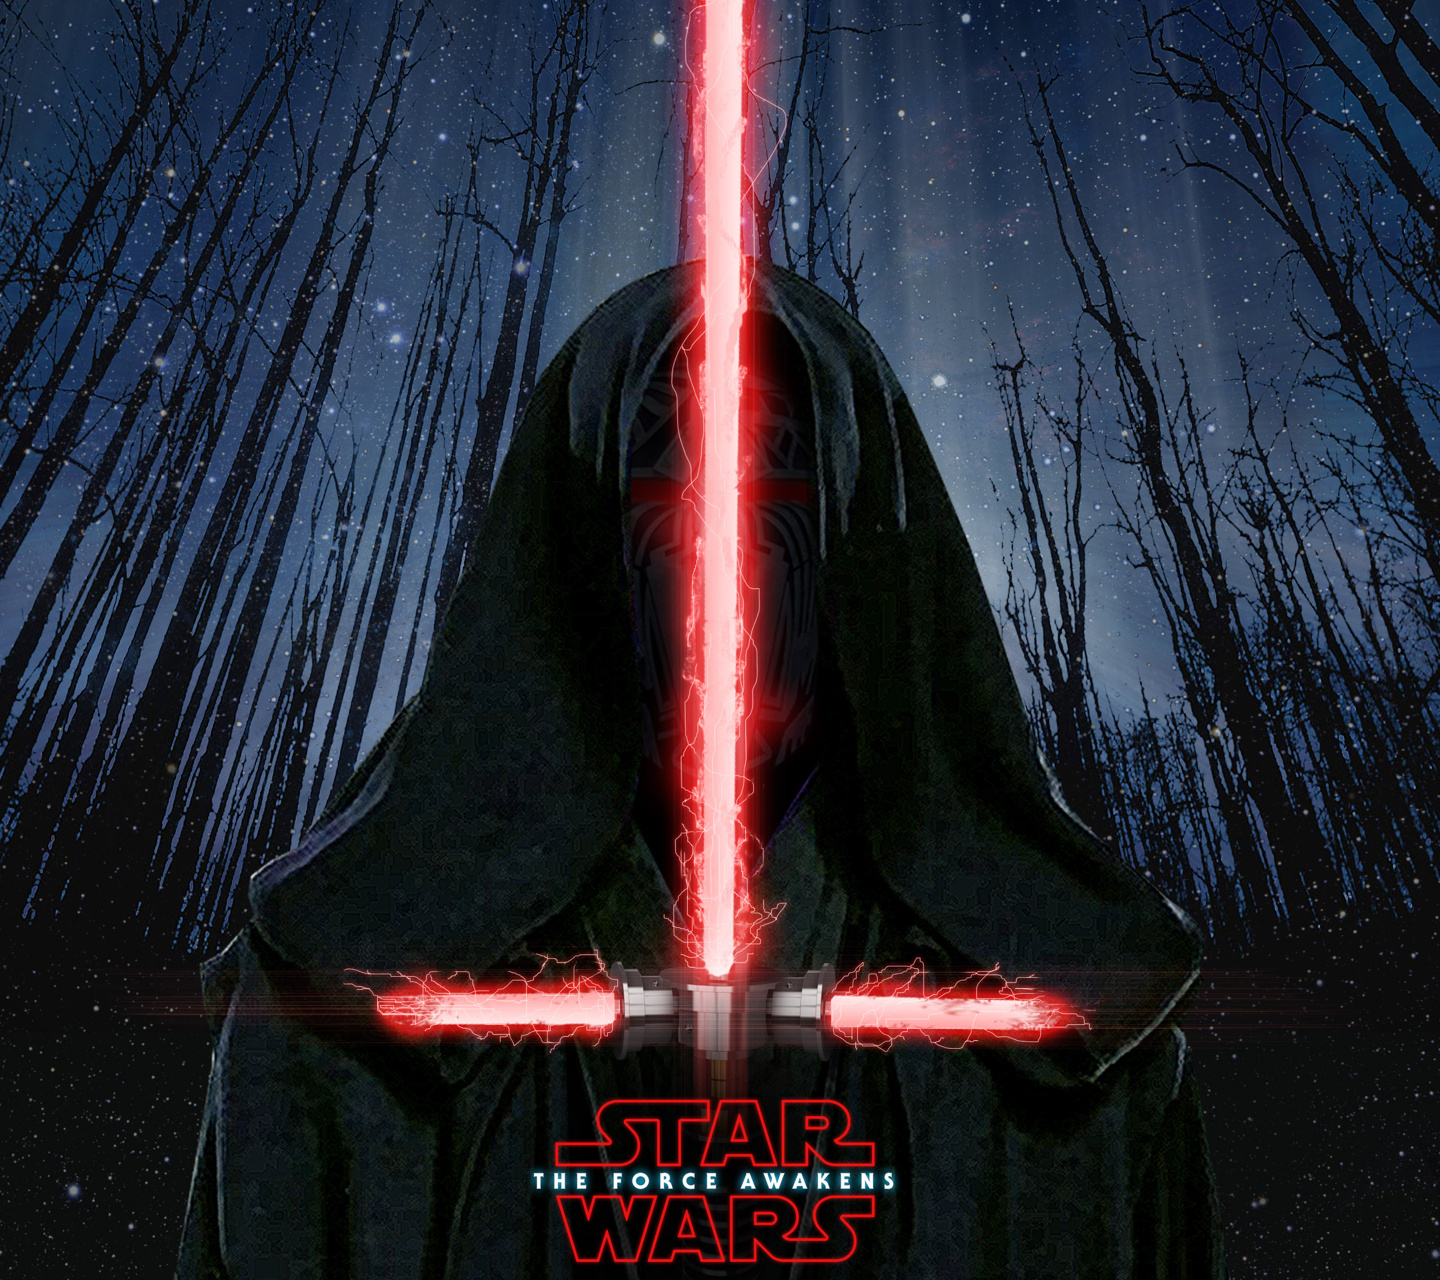 Star Wars Animated Live Wallpaper - The Force Awakens ...